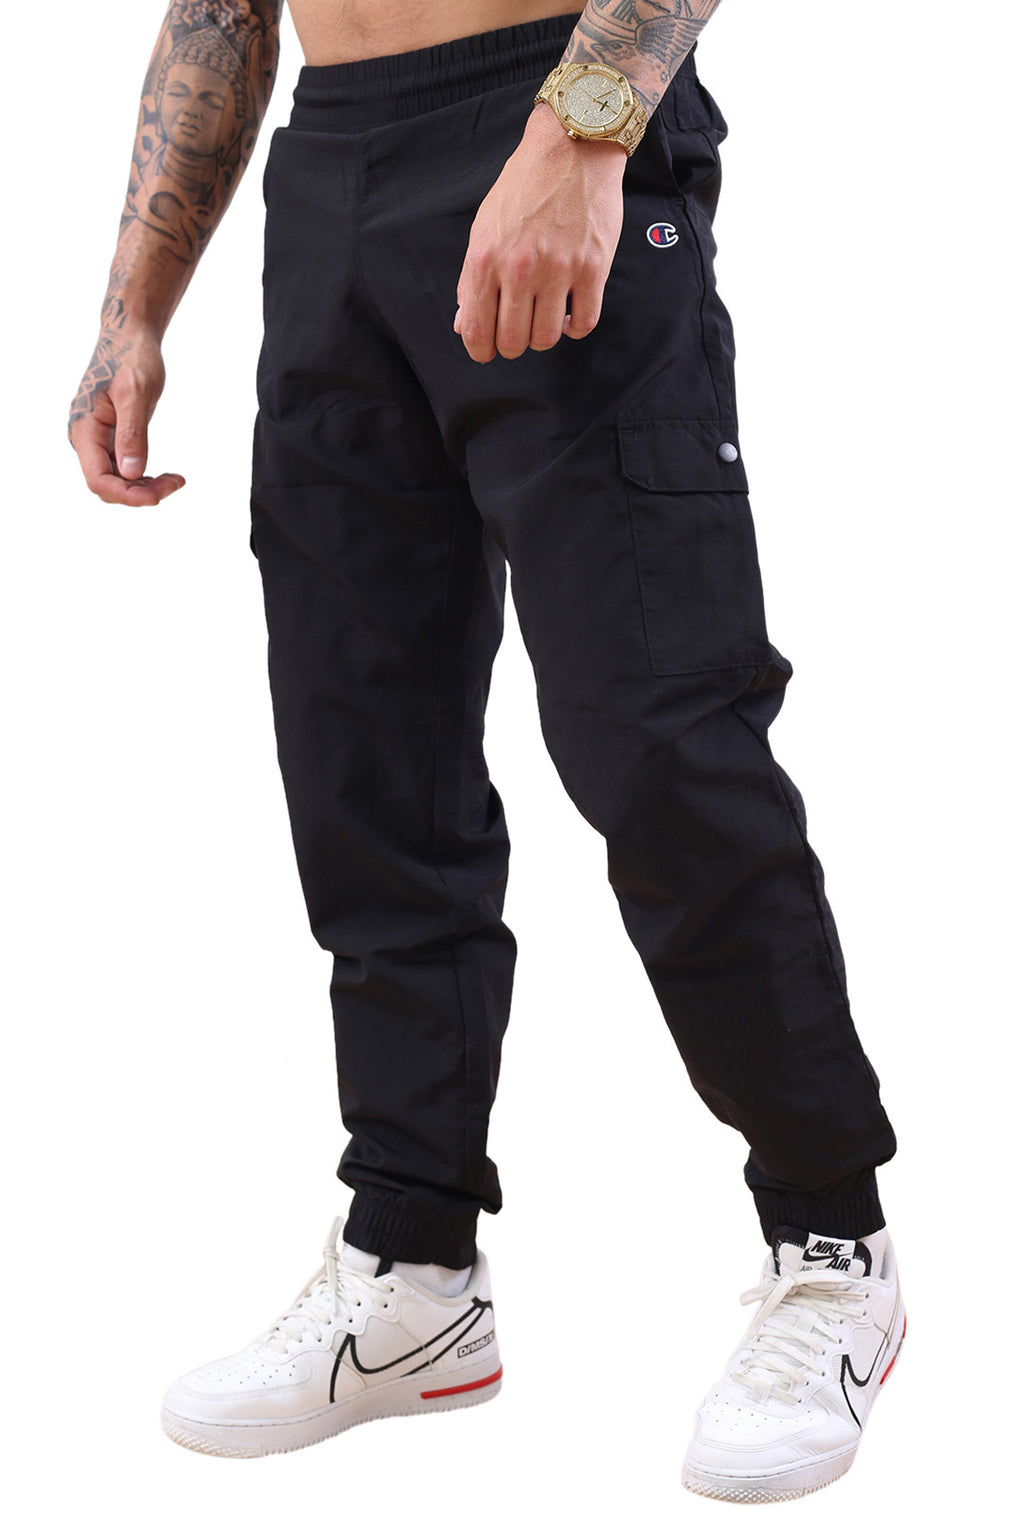 Champion EU Rochester CRNK Pocket Pant Black